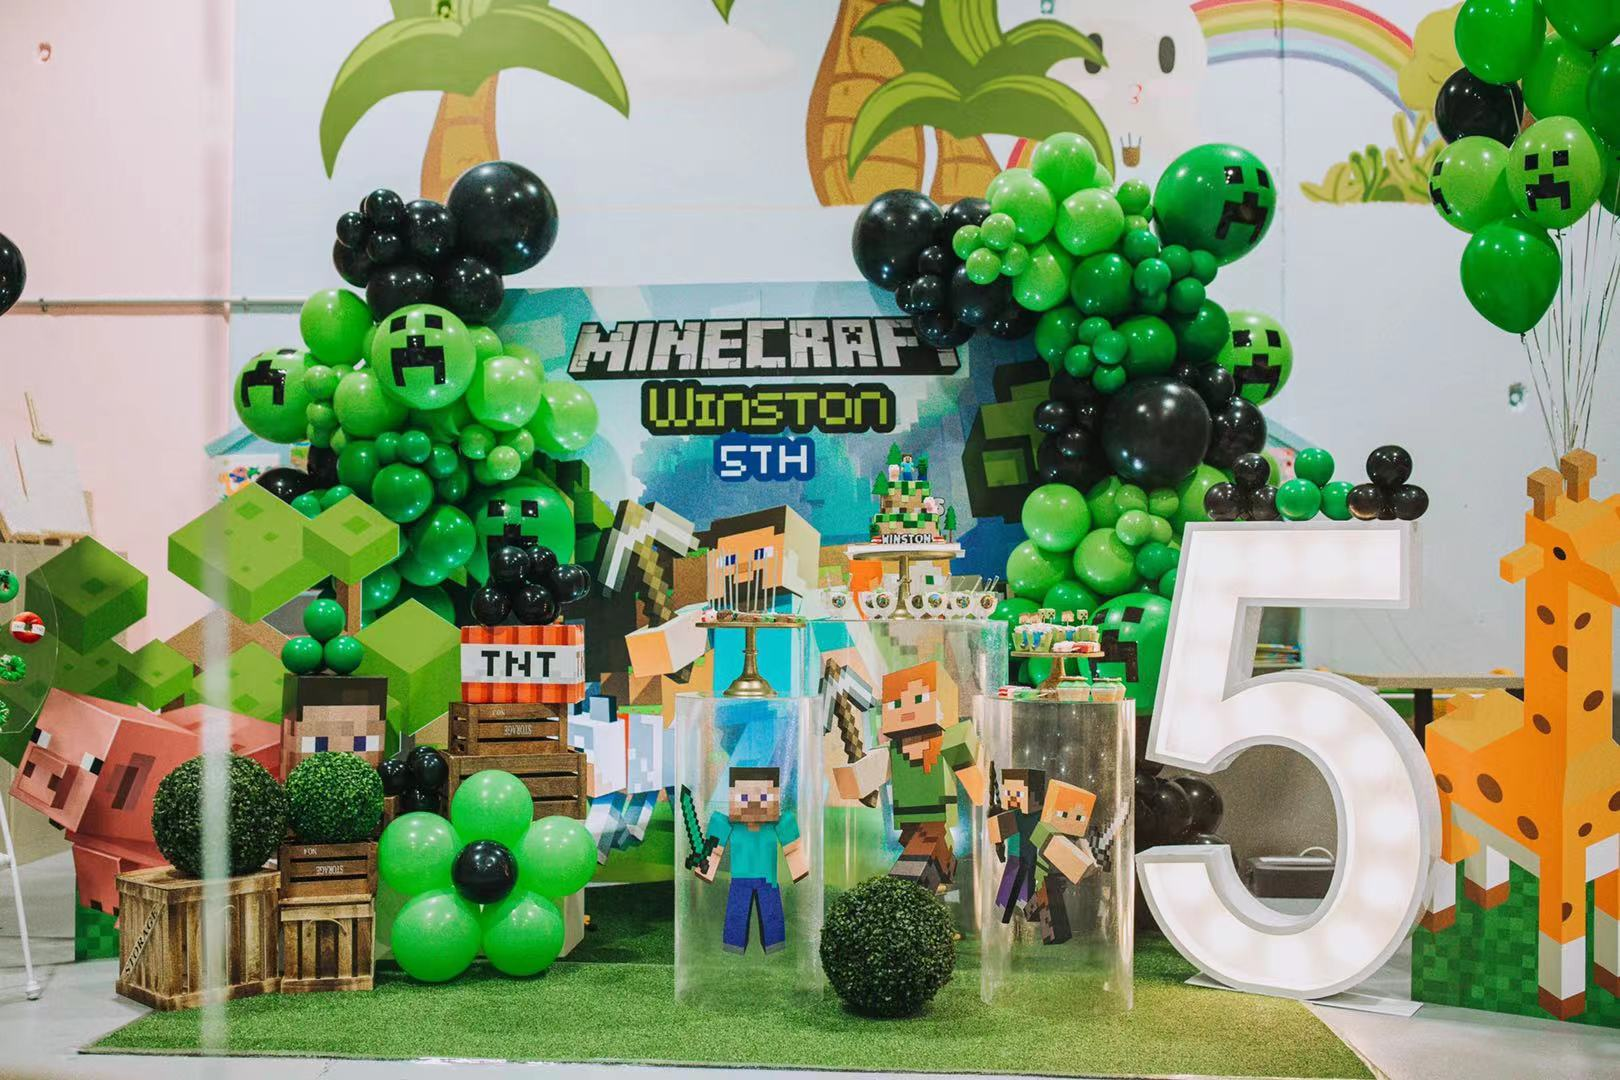 Minecraft Celebration // Styling and Hire from Luxe Dream